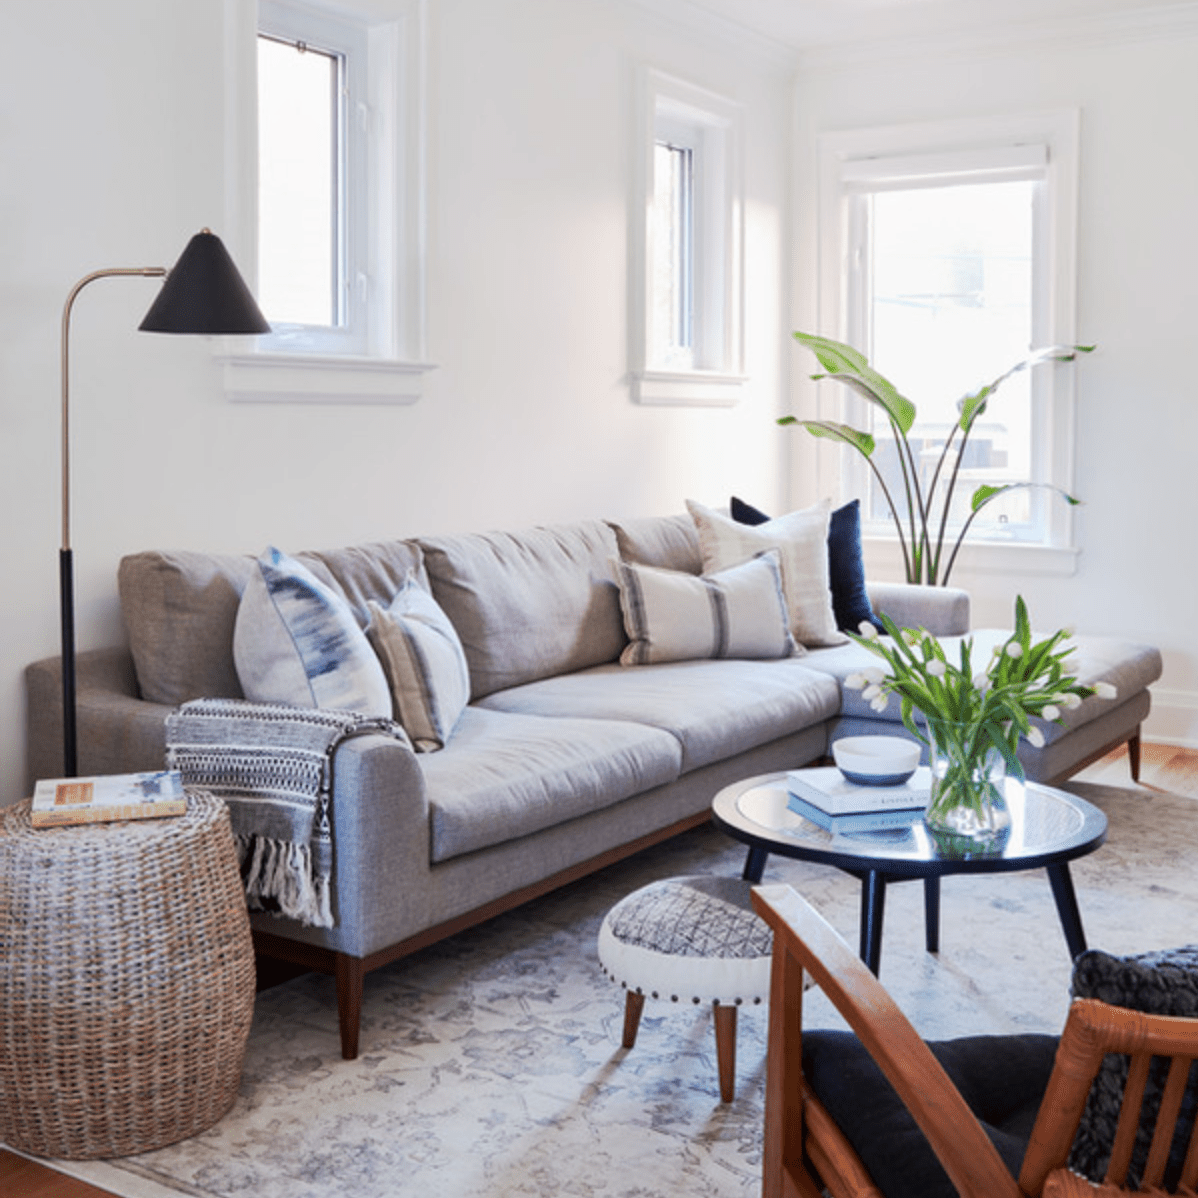 White living room with gray couch